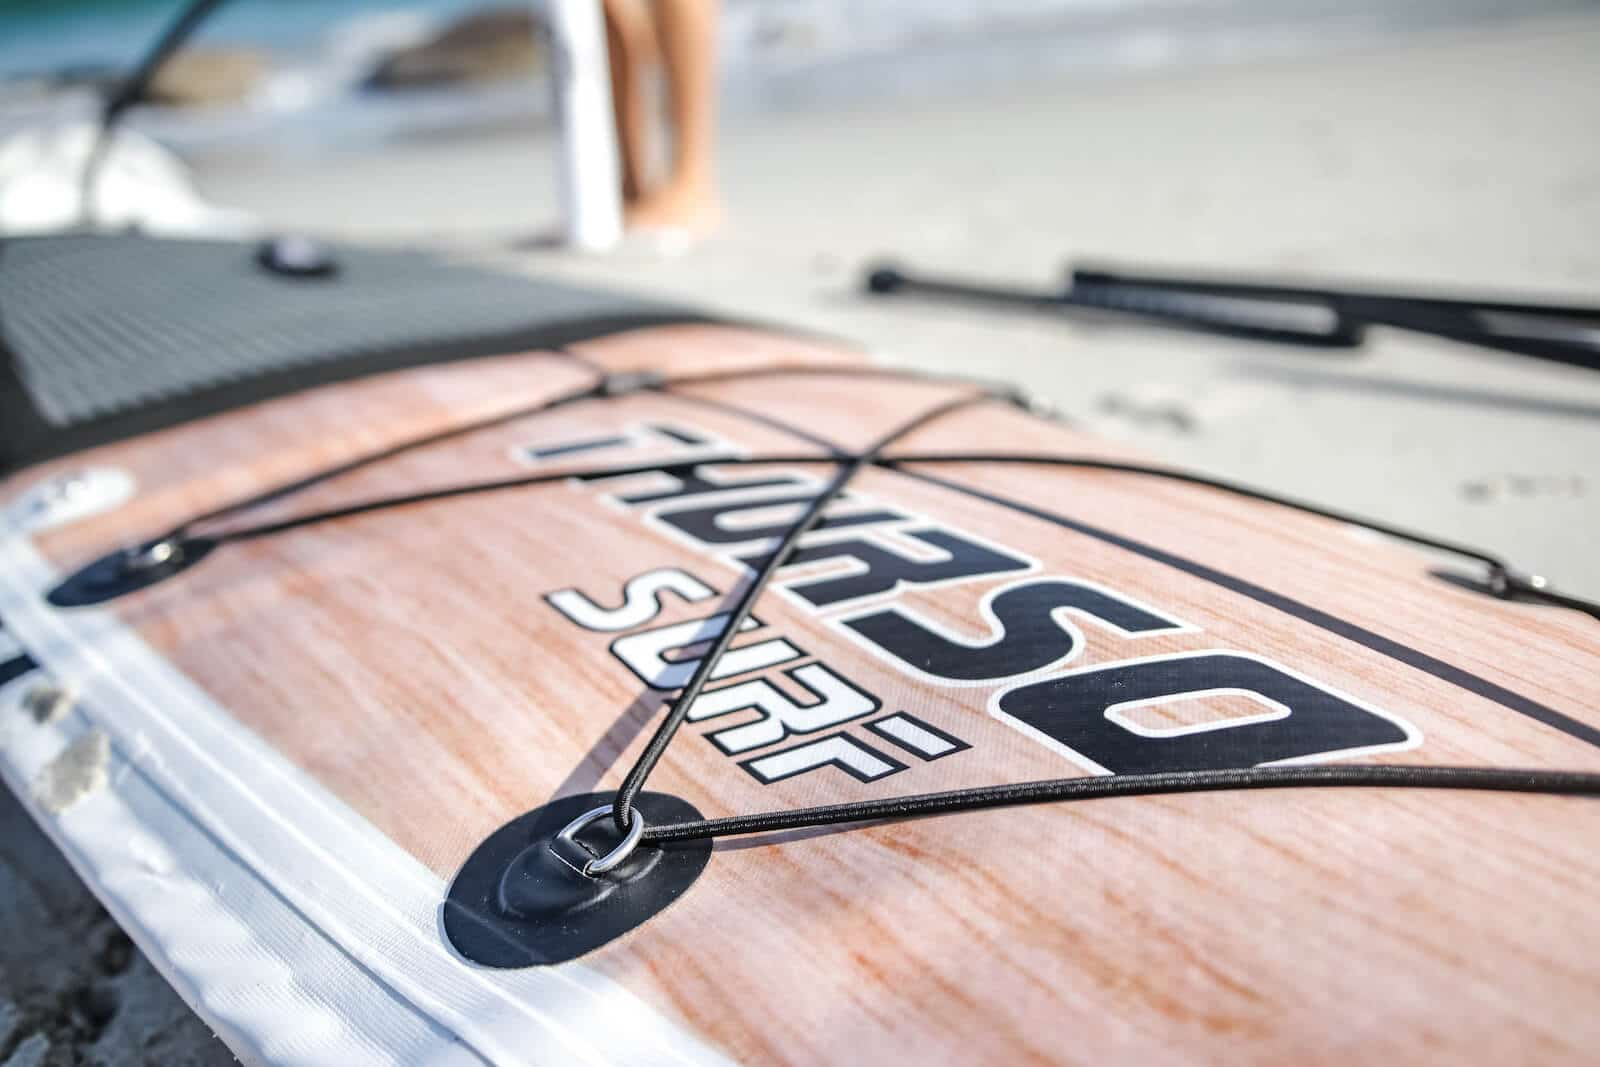 stand up paddle board shape and design comparison header image